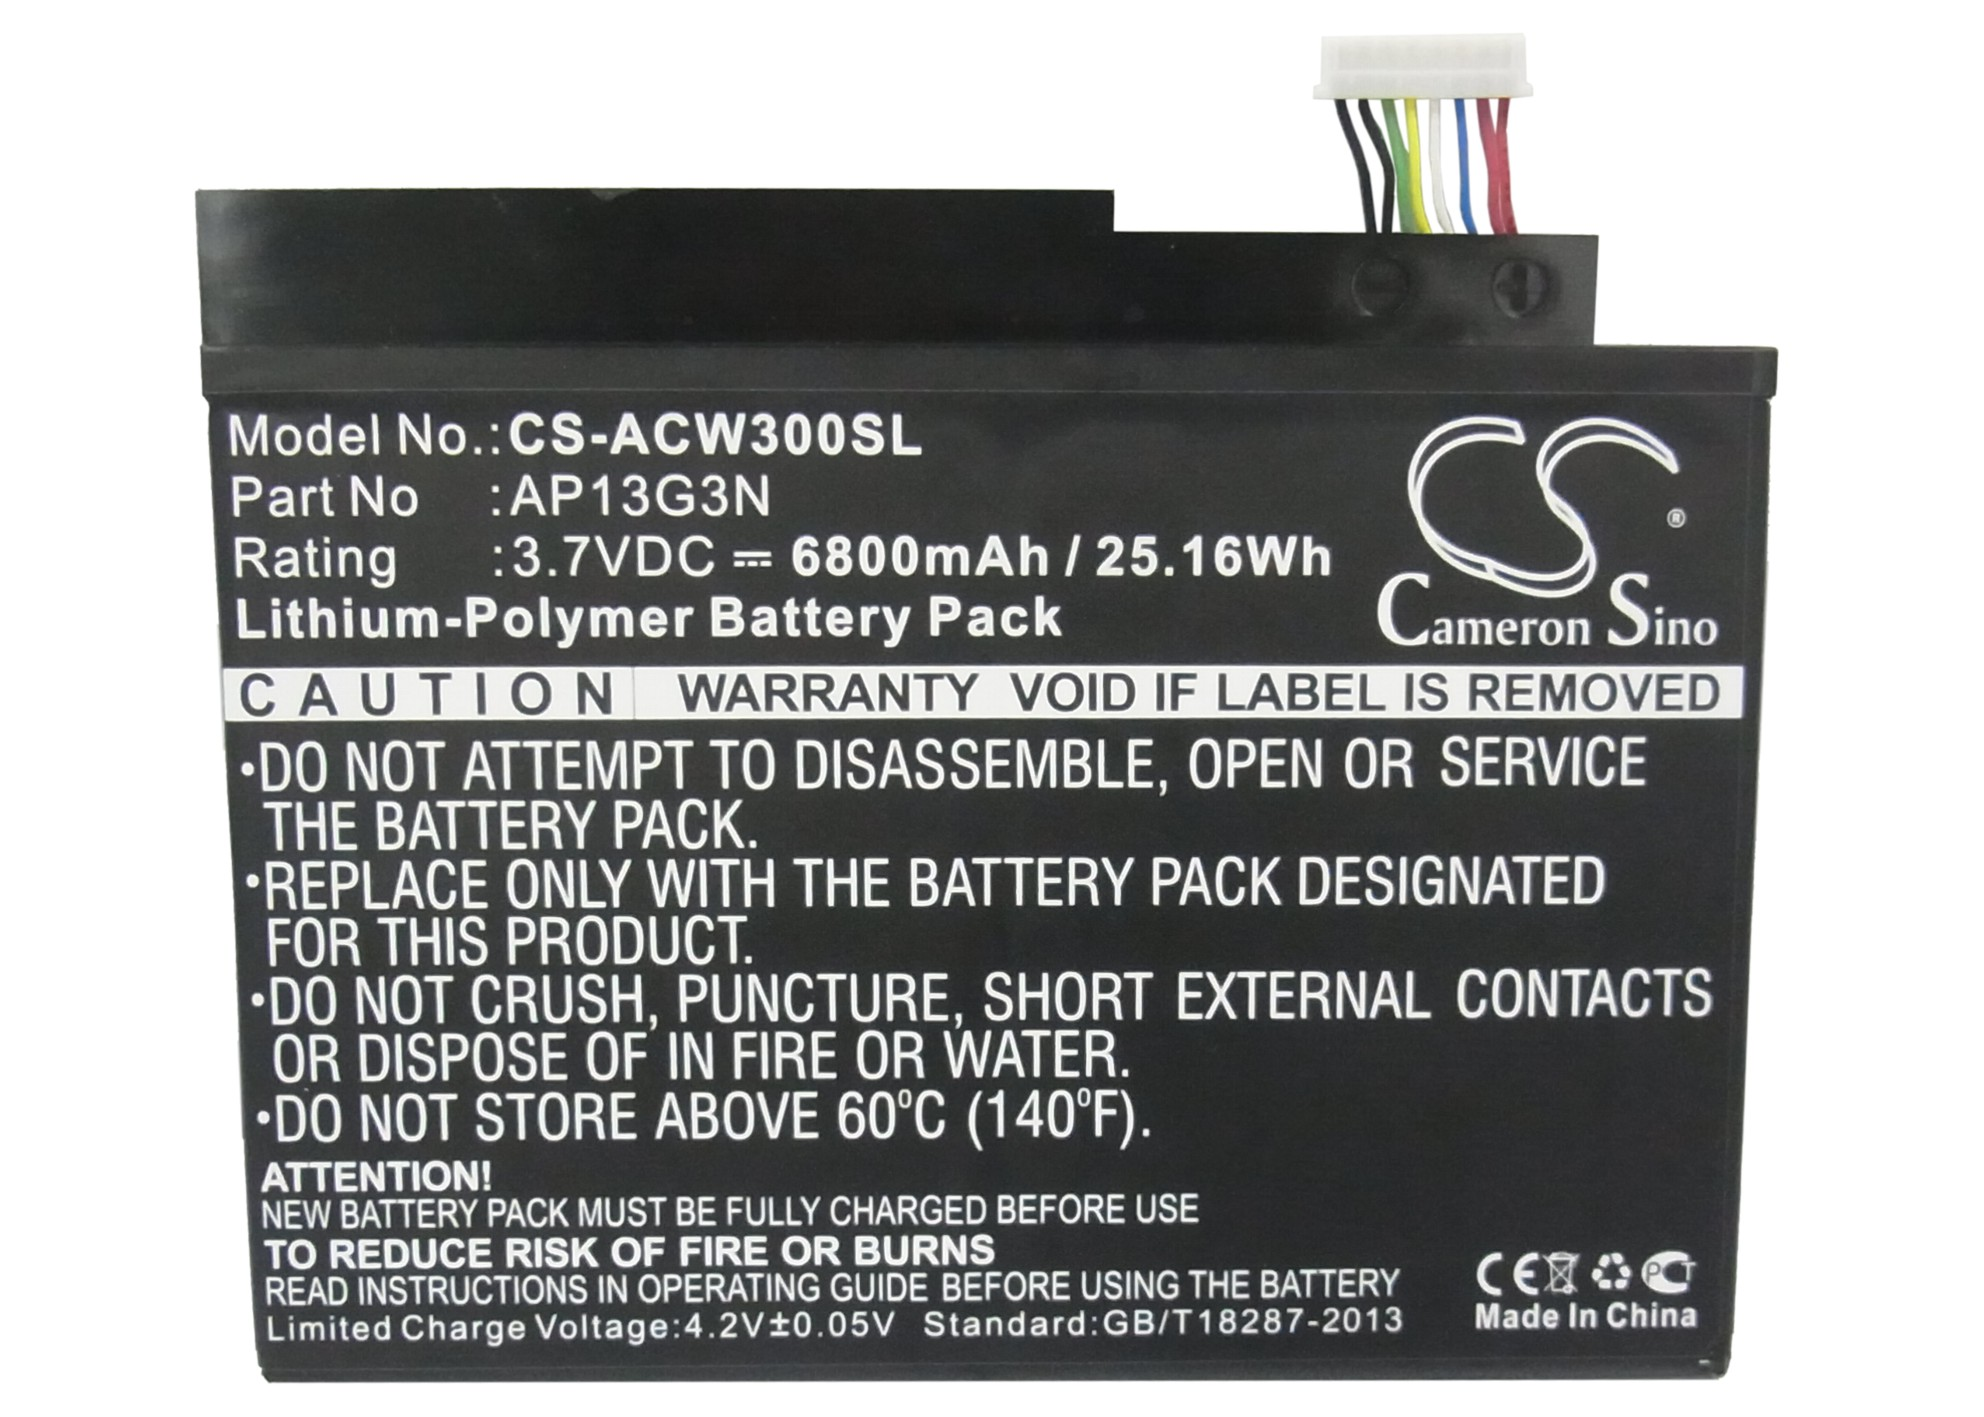 Cameron Sino 6800mAh Battery AP13G3N for Acer Iconia W3, Iconia W3-810, ZEIV4 cameron sino 2600mah battery 061834 63404 for bose soundlink mini